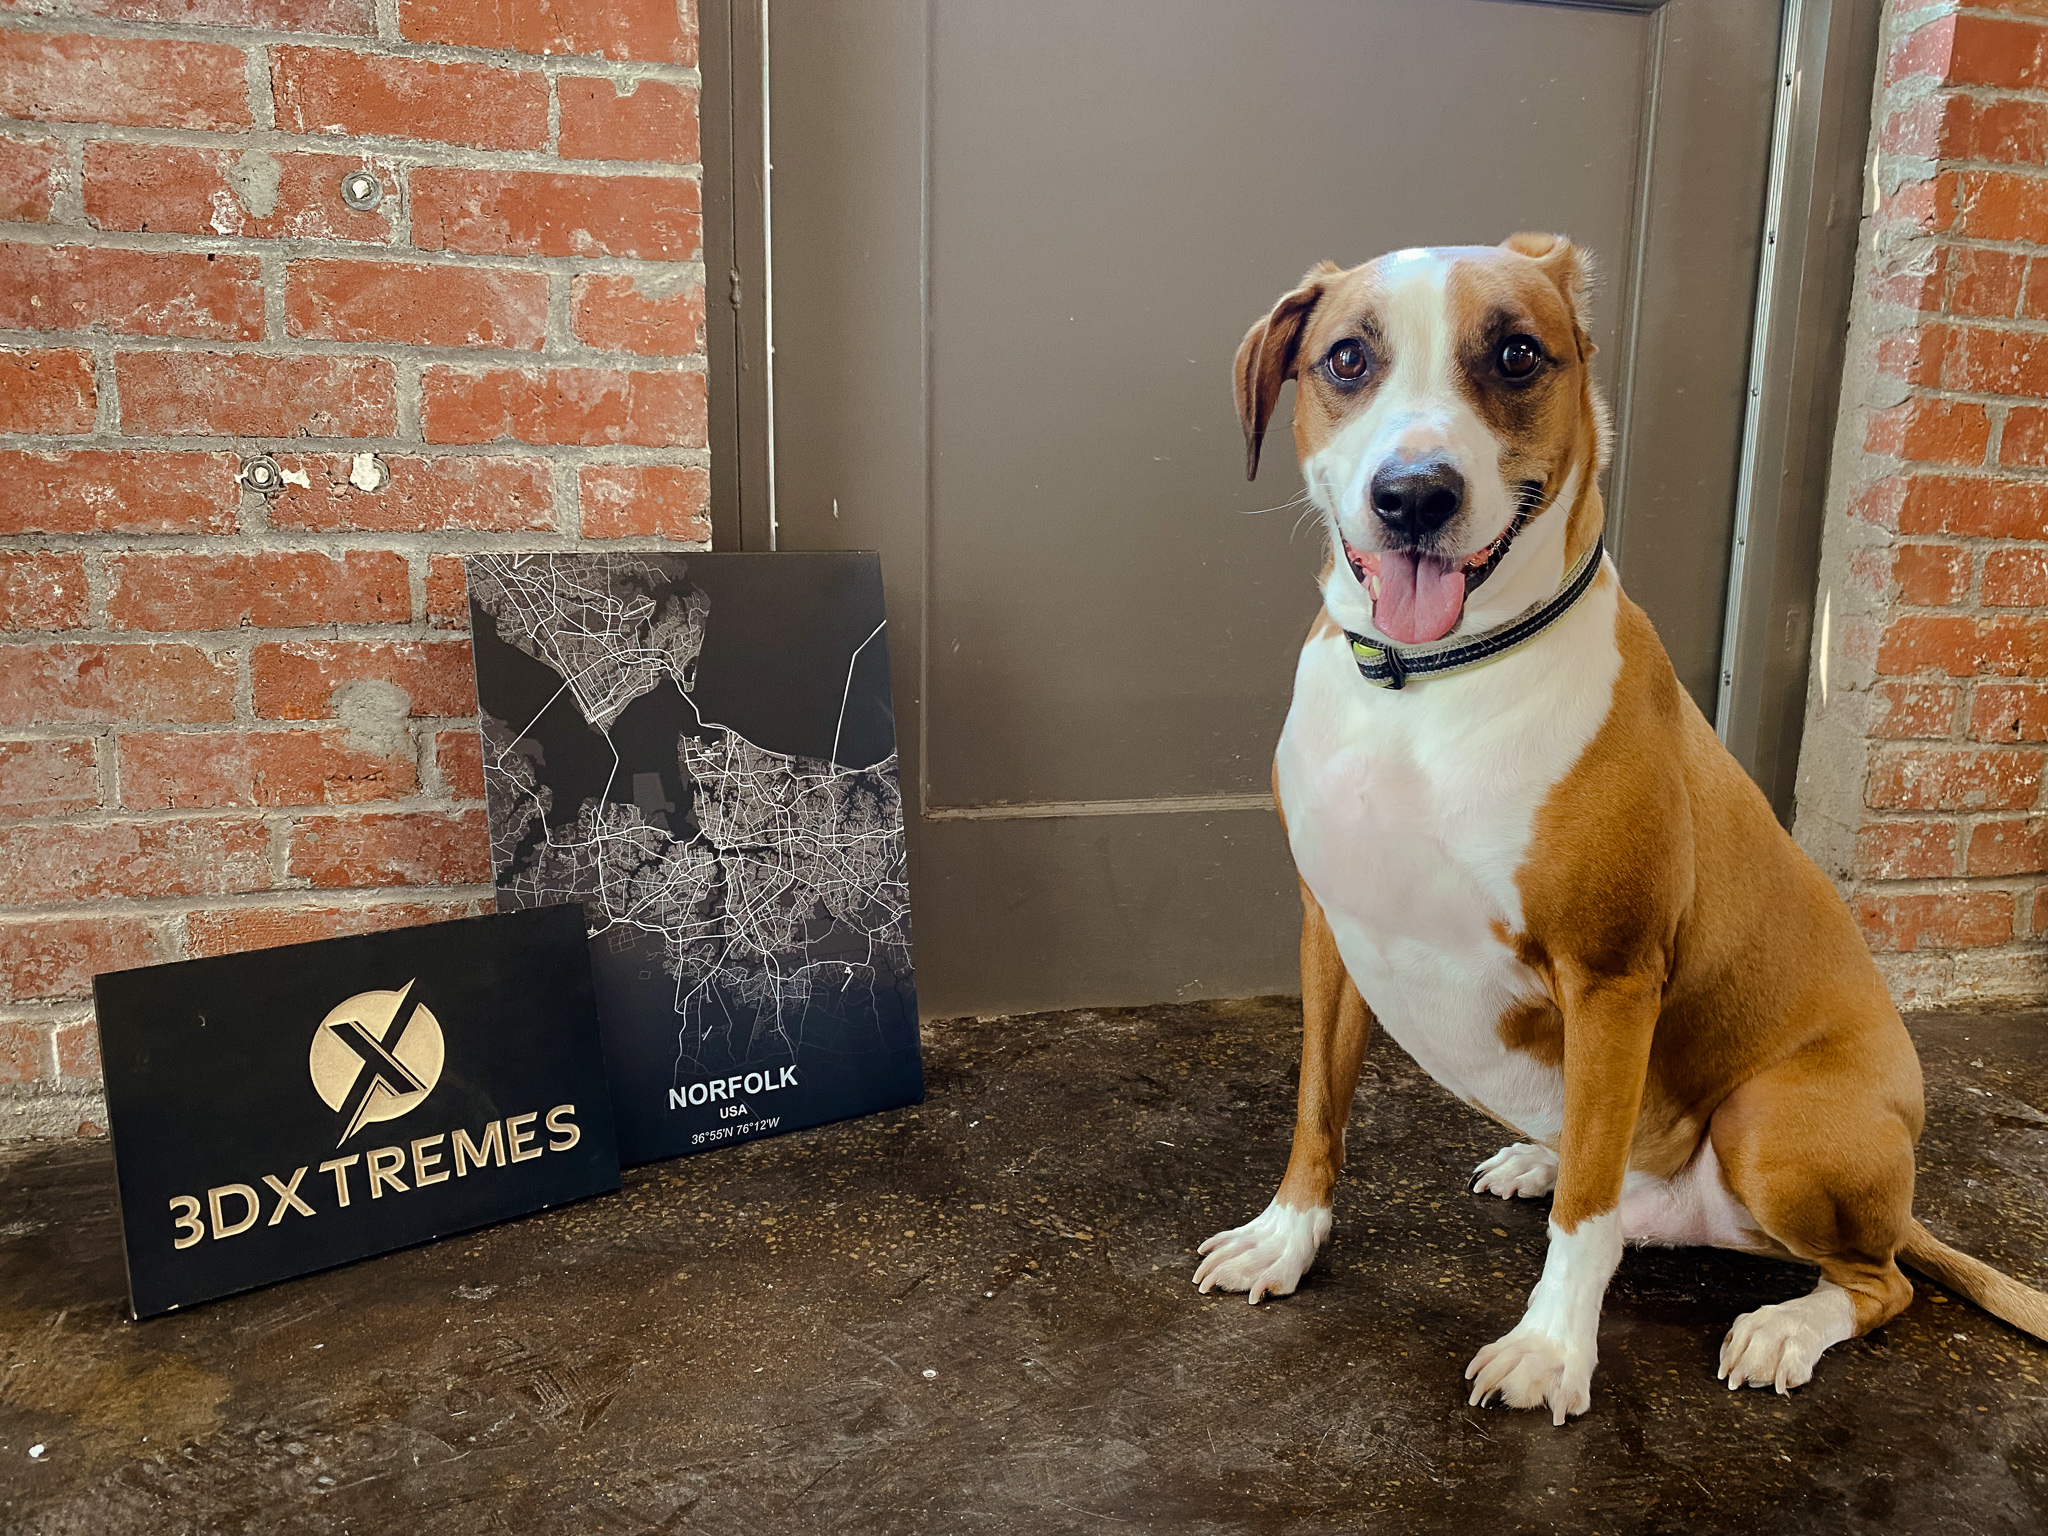 3DXtremes National Dog Day